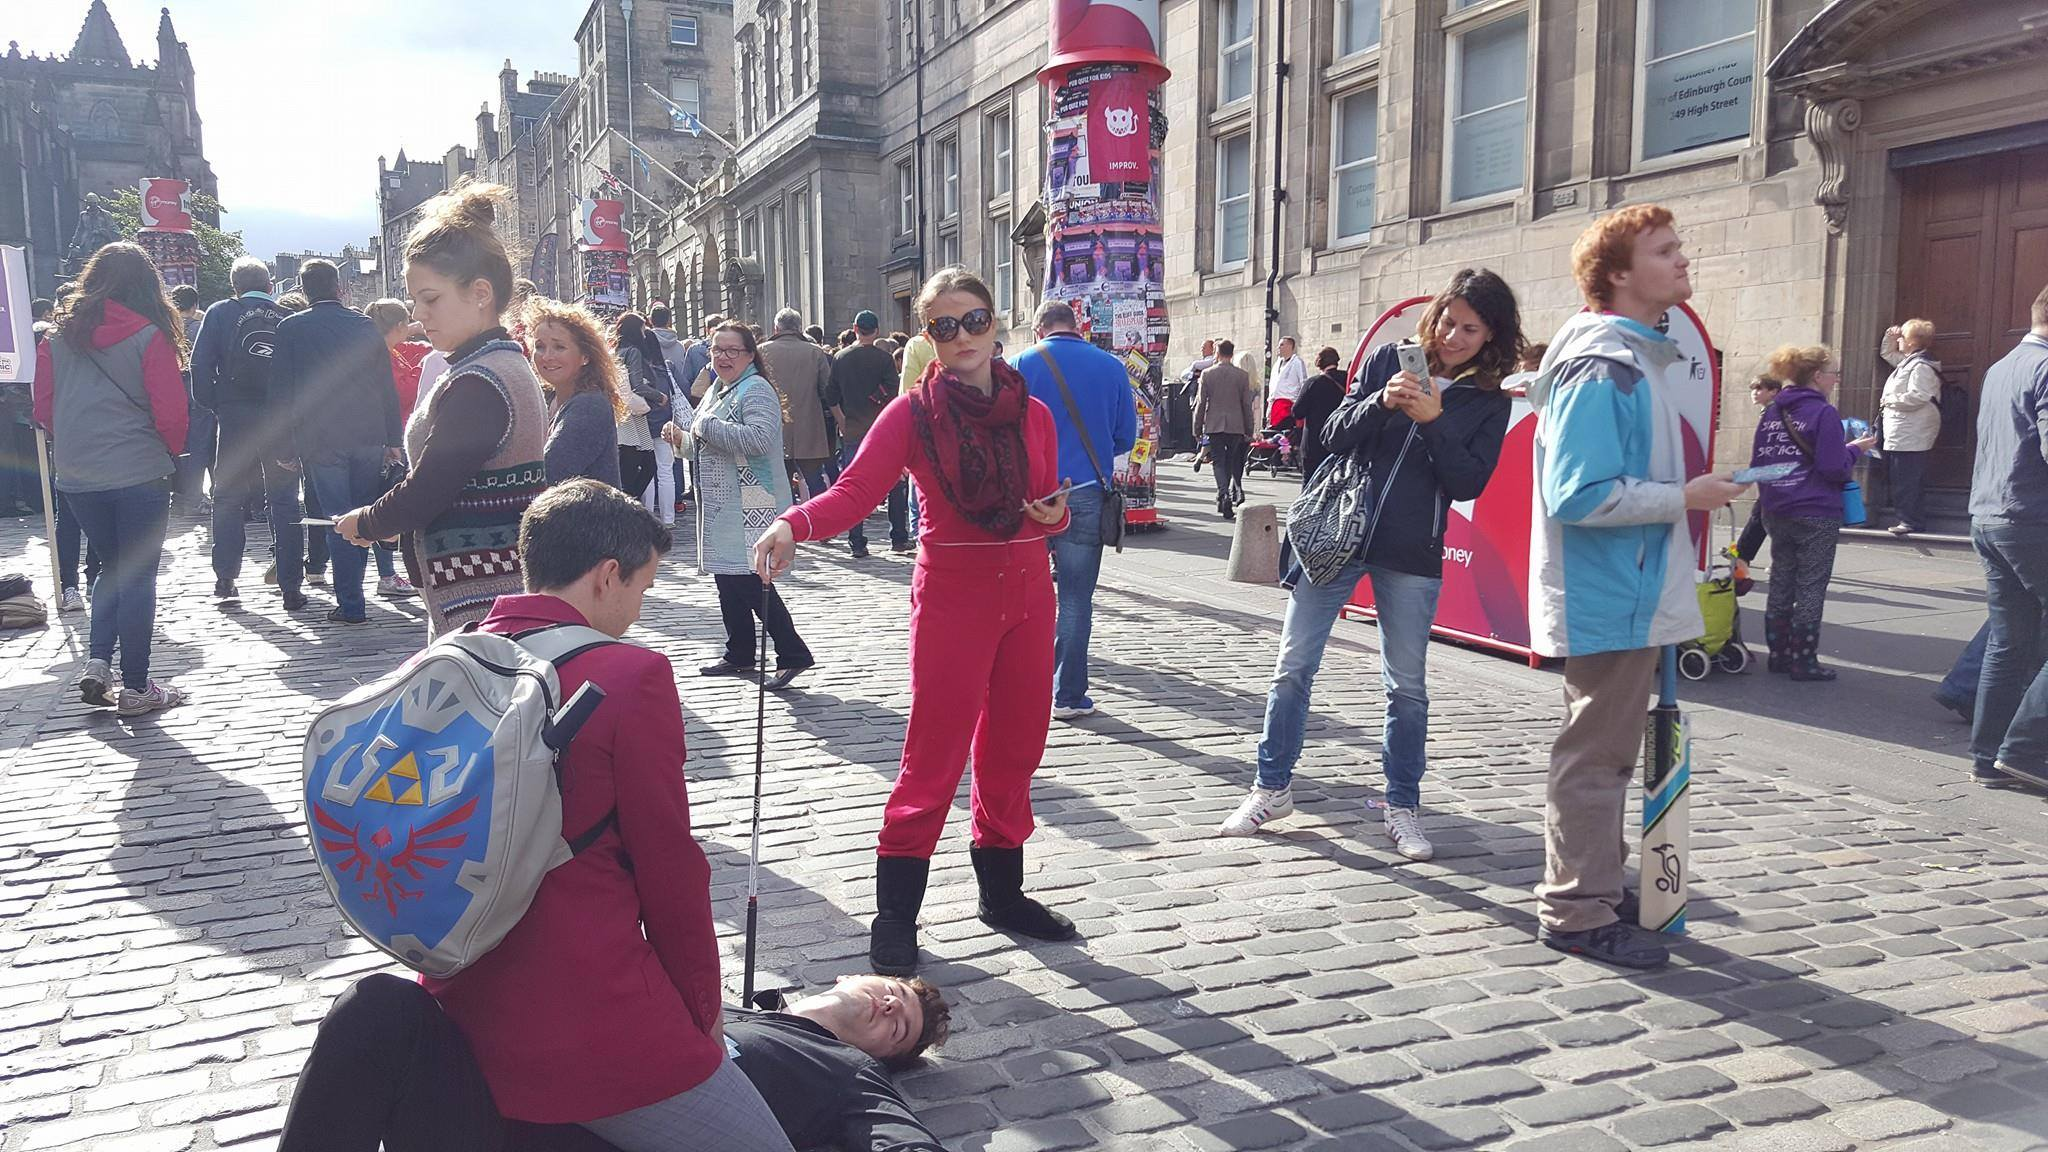 The cast of Parish Fête-ality: A Game of Scones, flyering at Edinburgh Fringe Festival